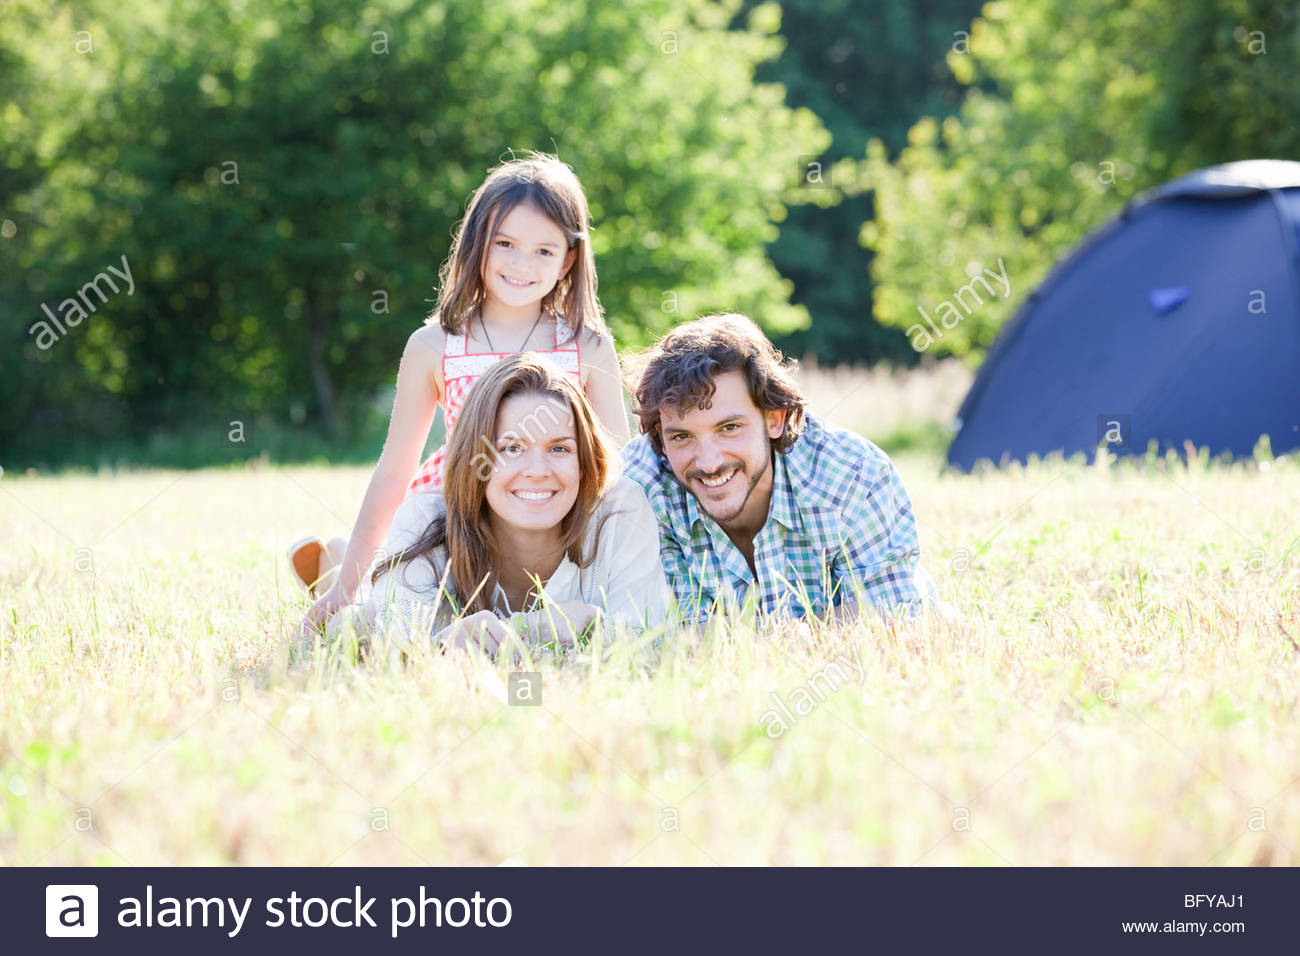 Family laying in grass in country scene - Stock Image